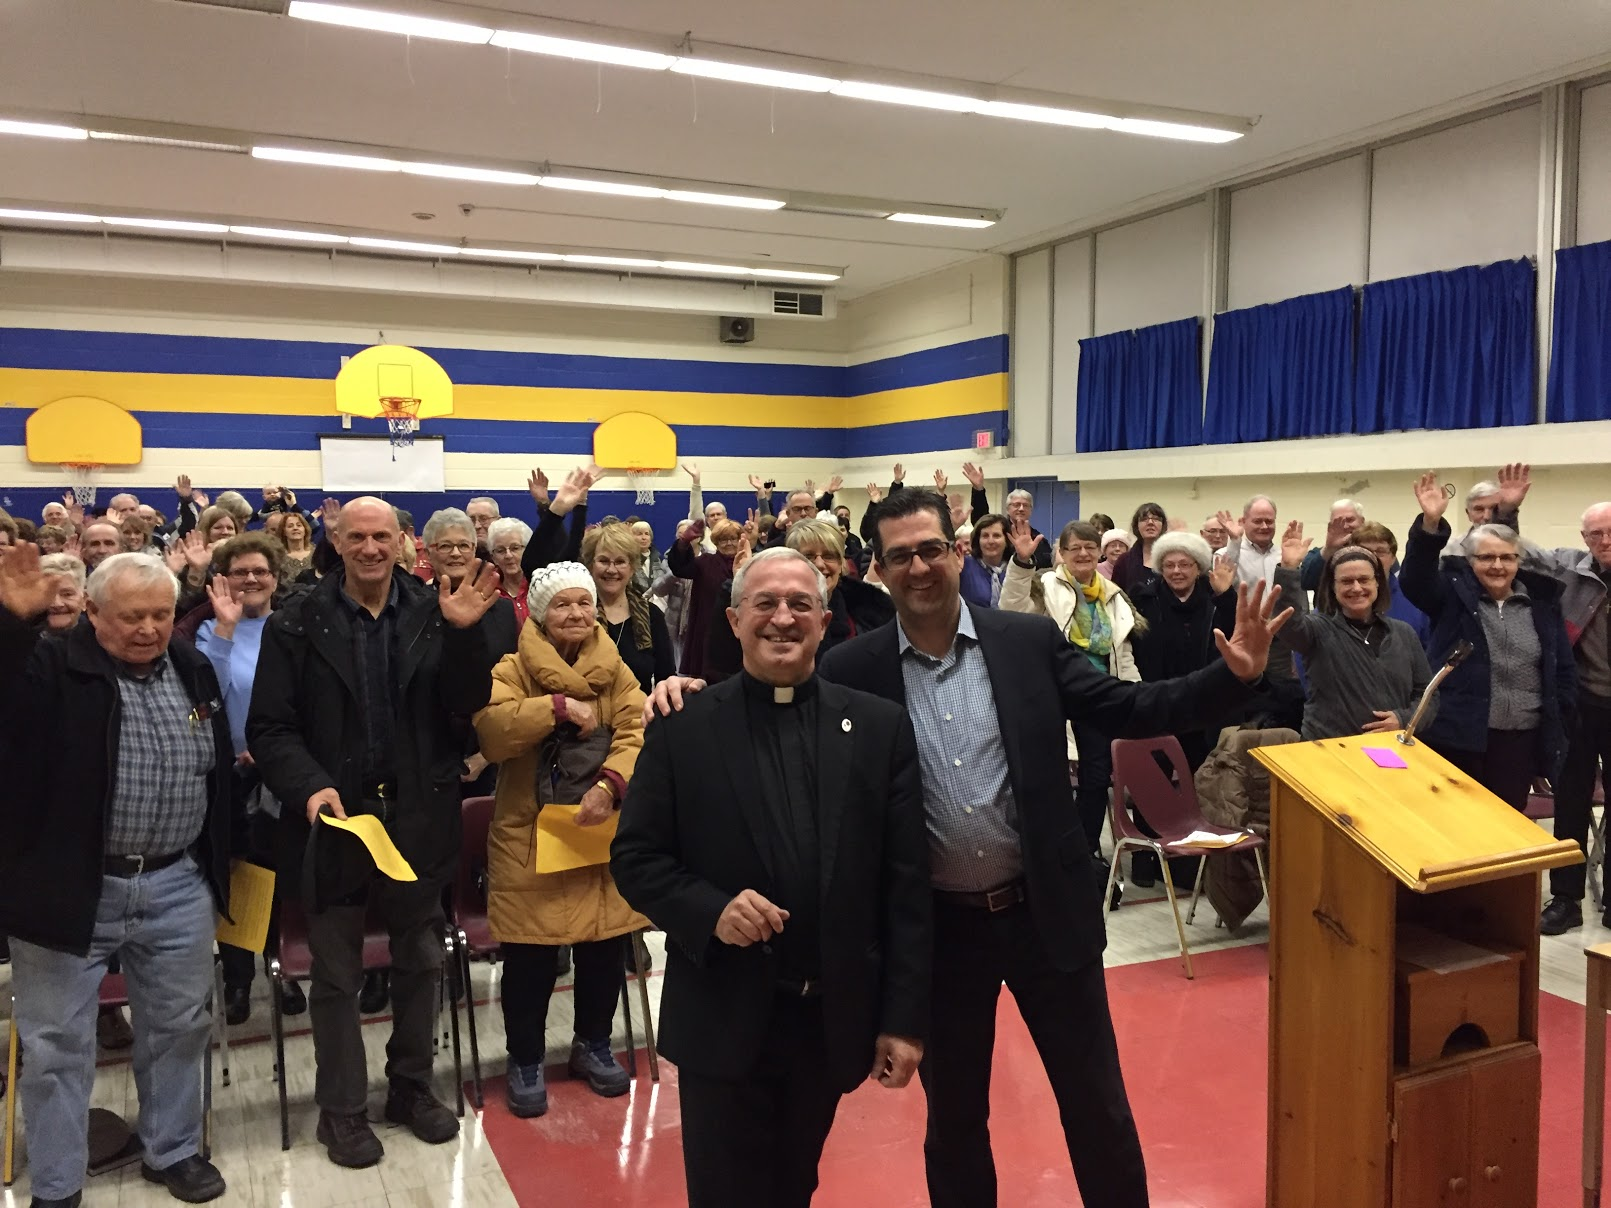 At the Homecoming event at St Mary's (with Fr. Tom Lynch)